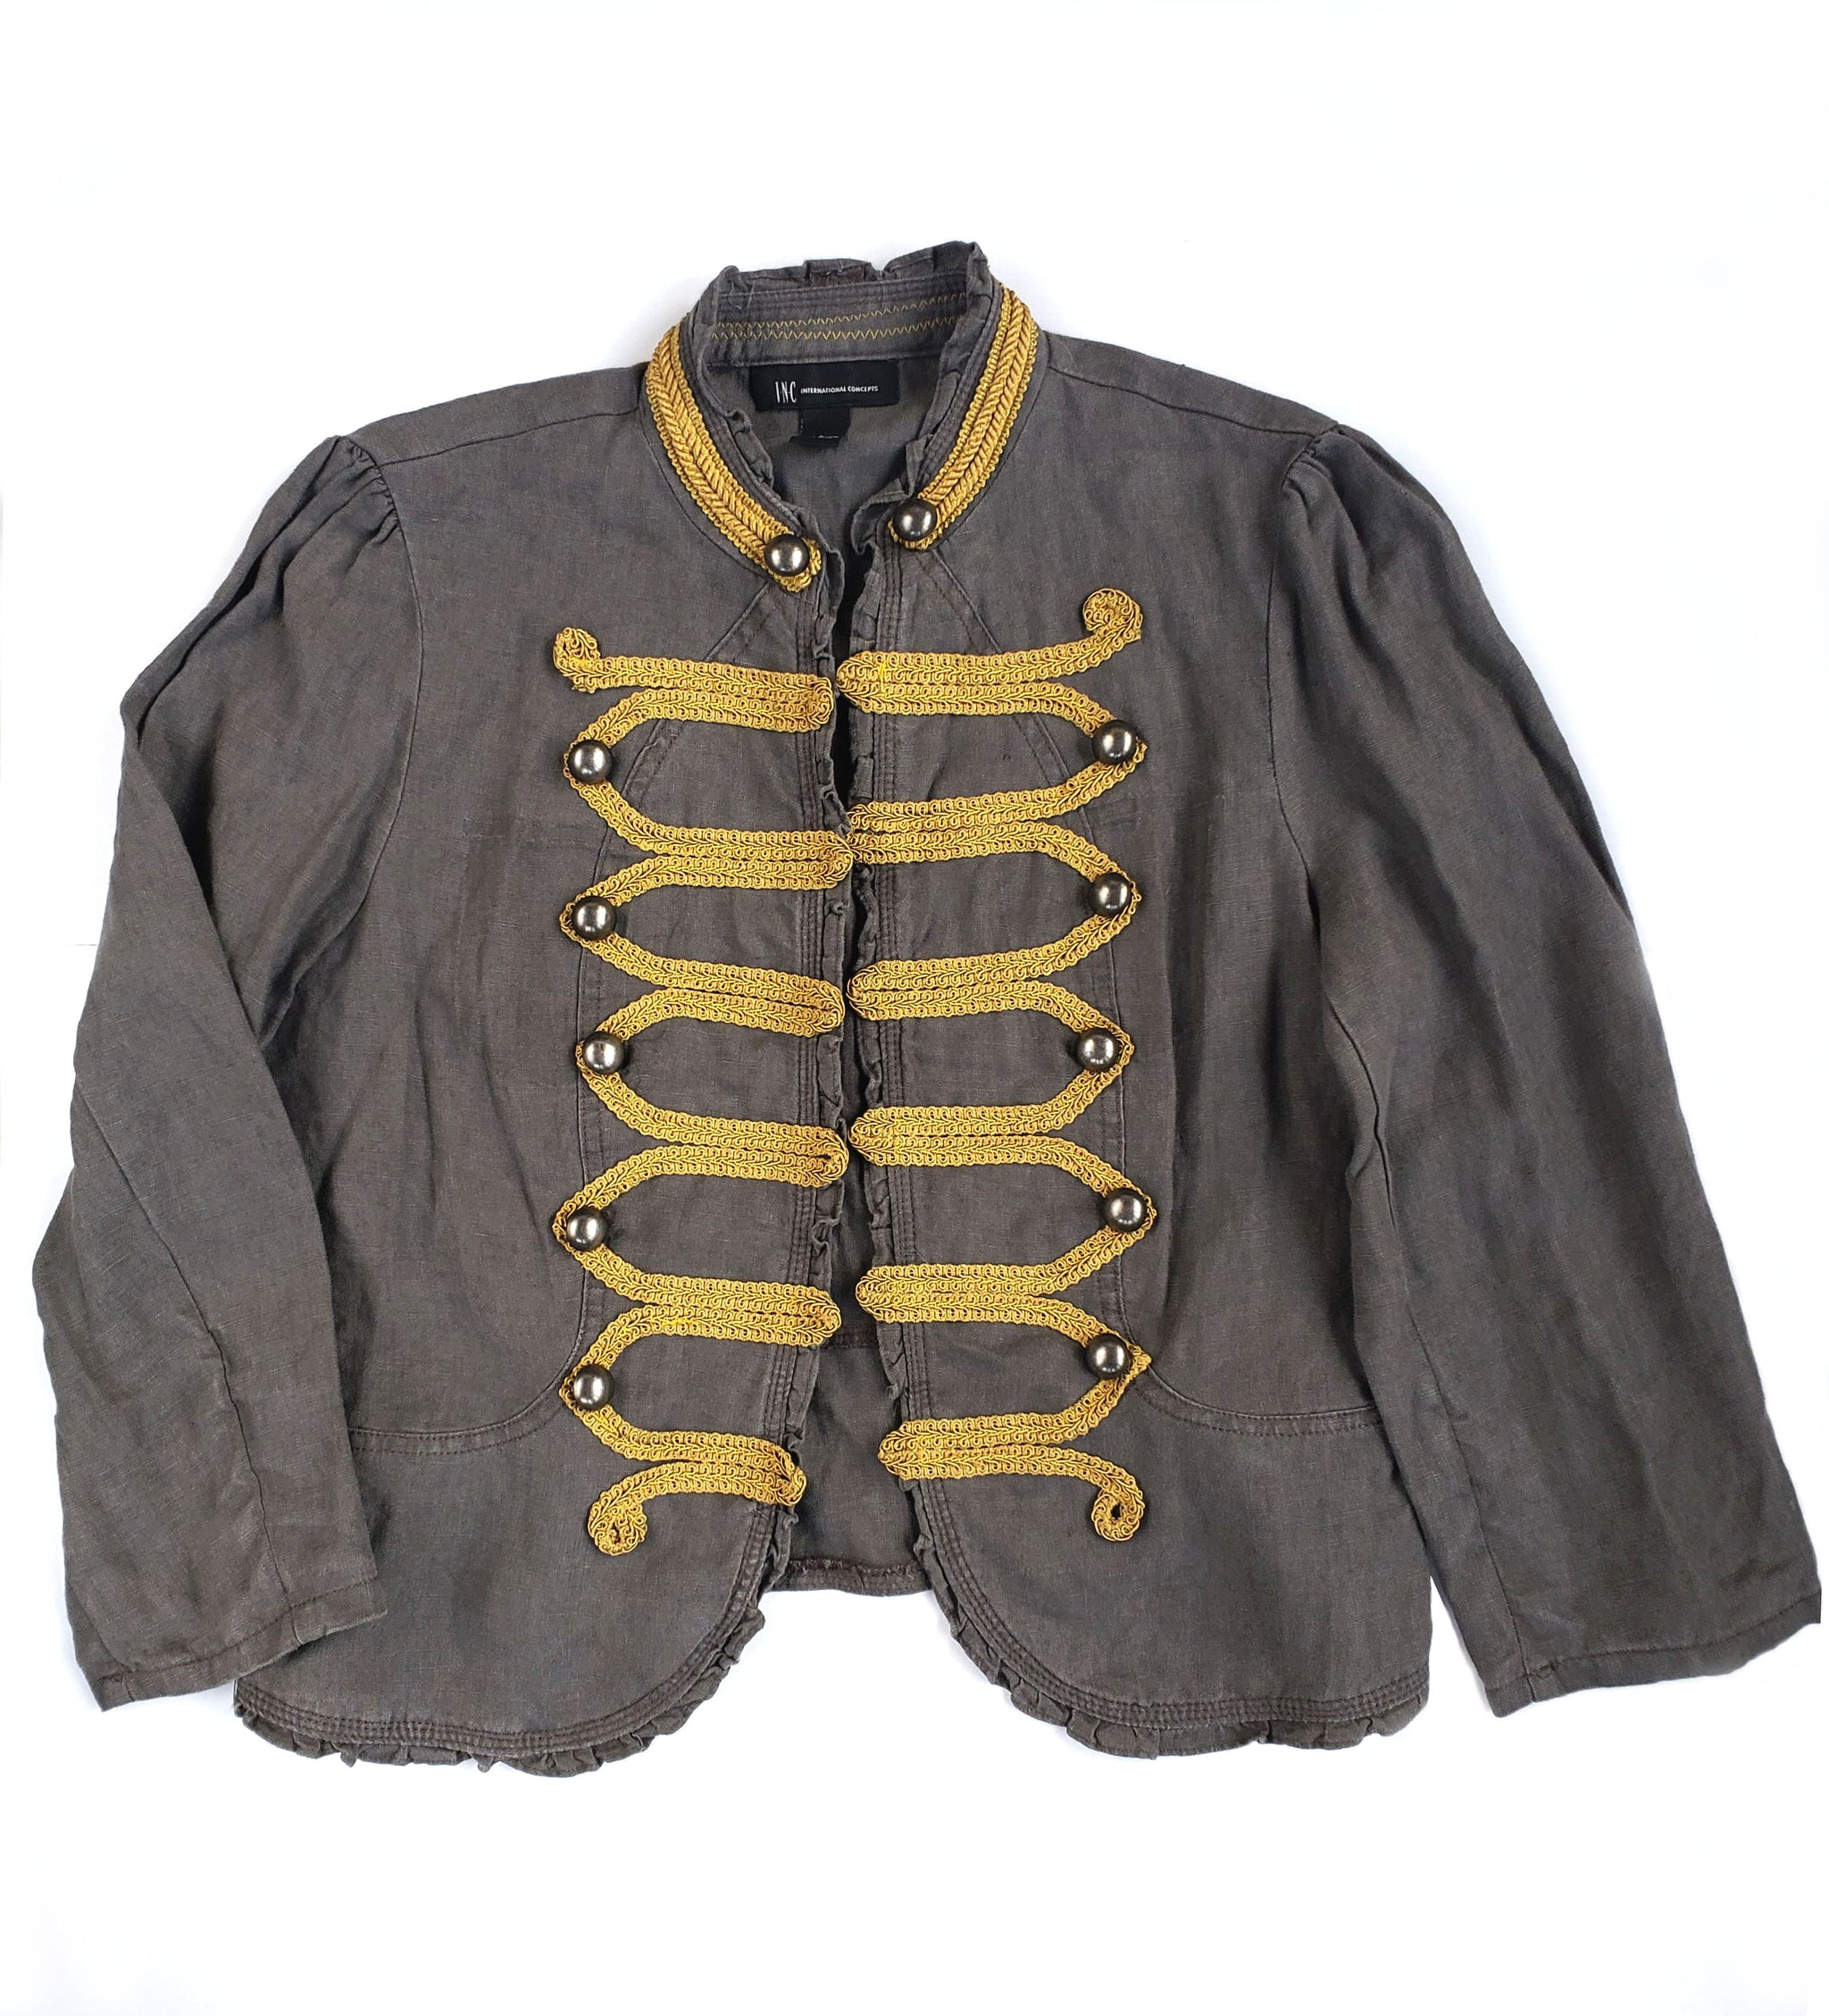 #thejacketproject - Vintage Military Style Rocker Jacket #3